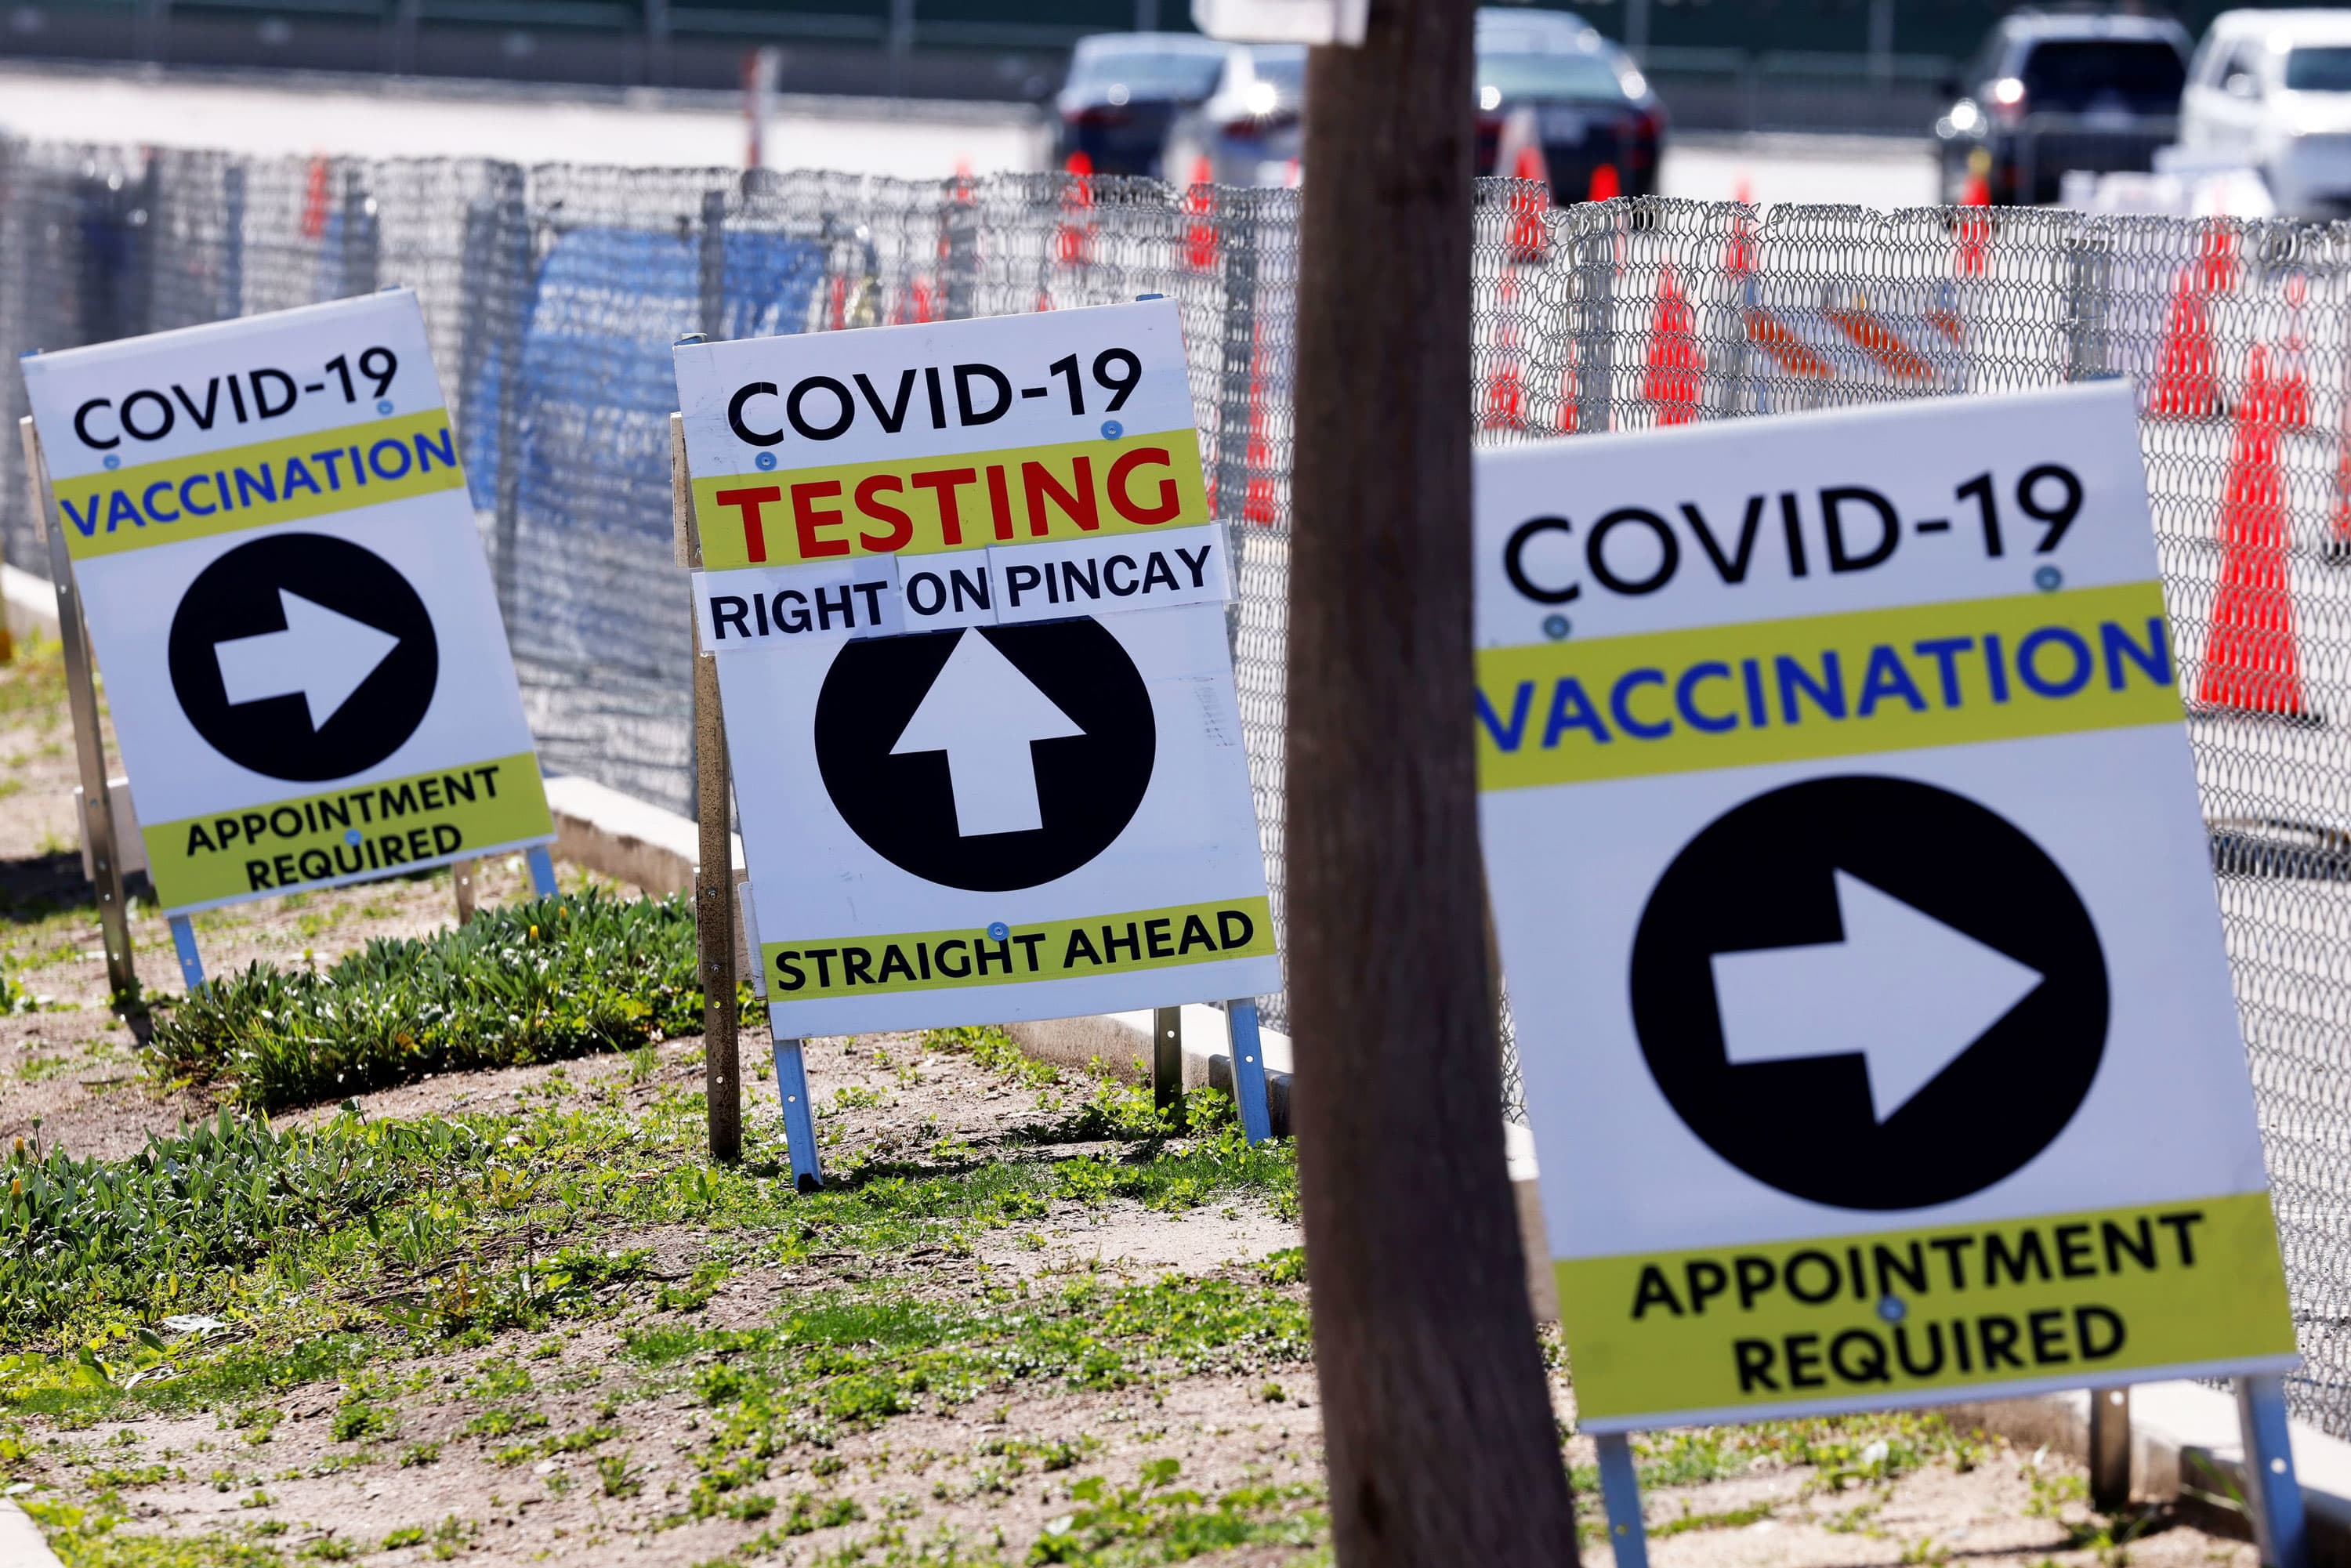 Dr. Scott Gottlieb expects Covid cases in U.S. to fall 'quite dramatically' in coming weeks